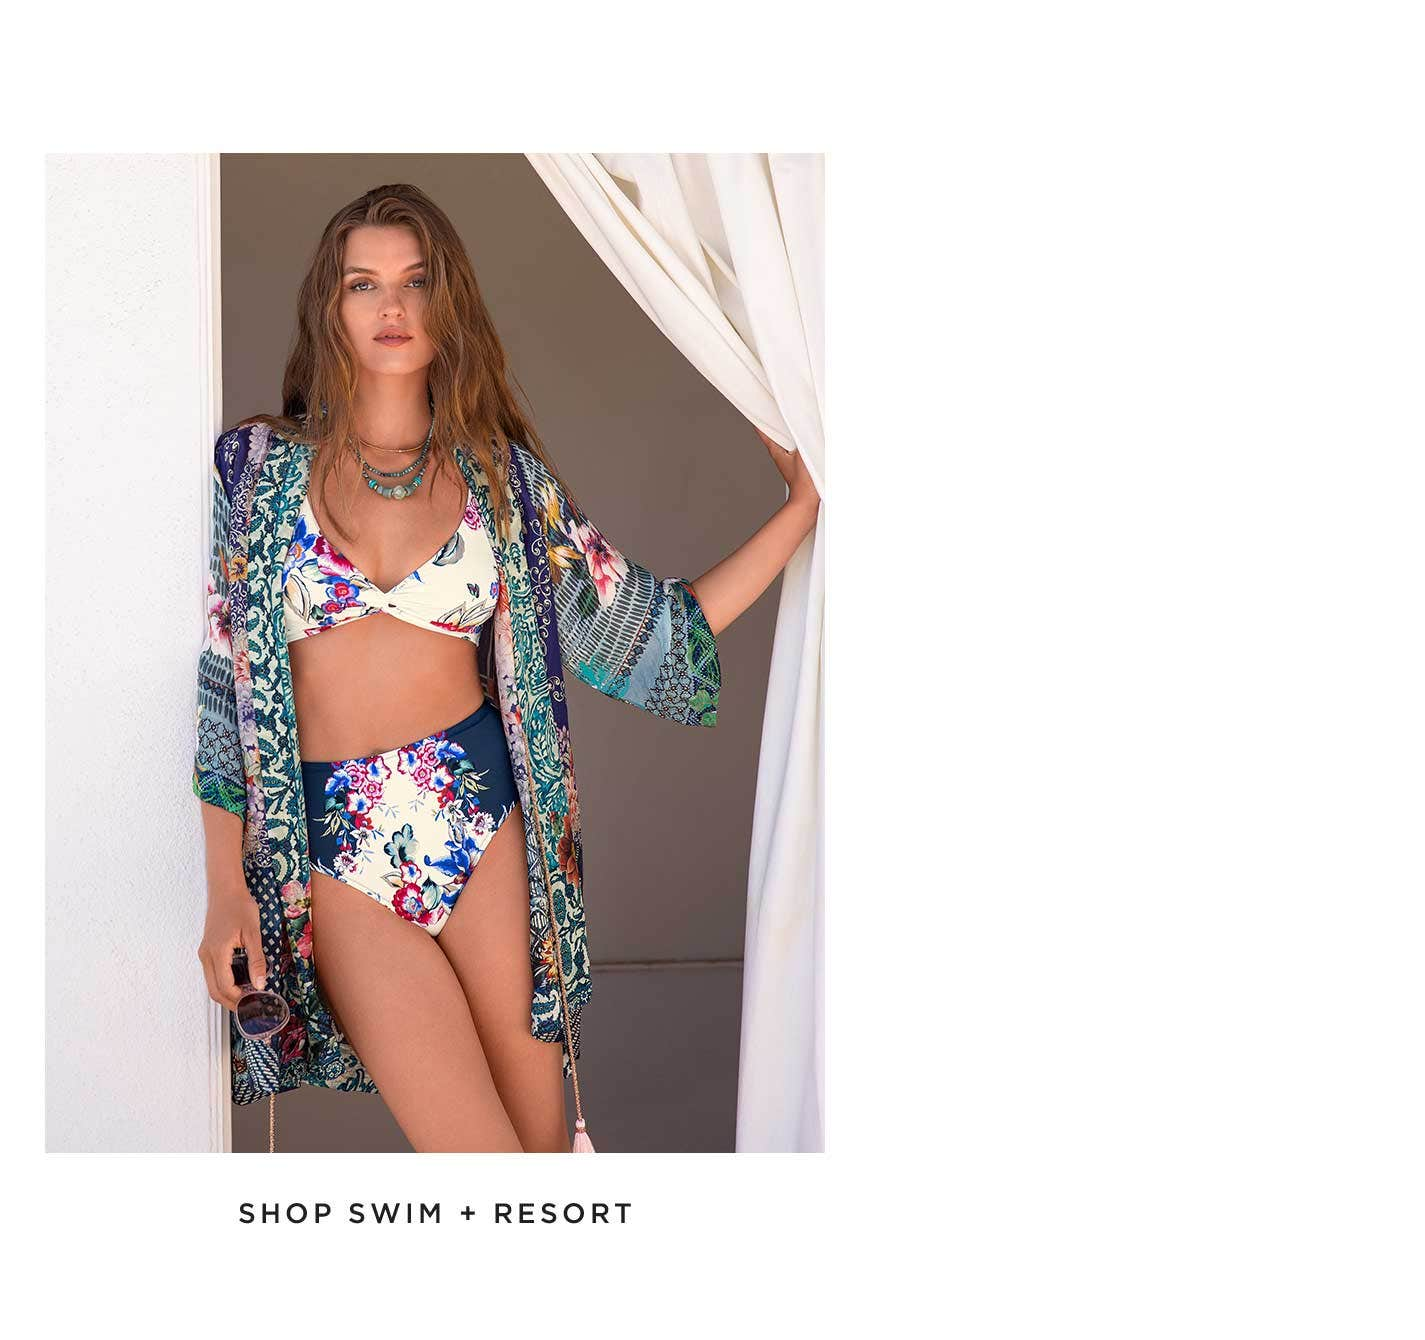 Shop Swim + Resort